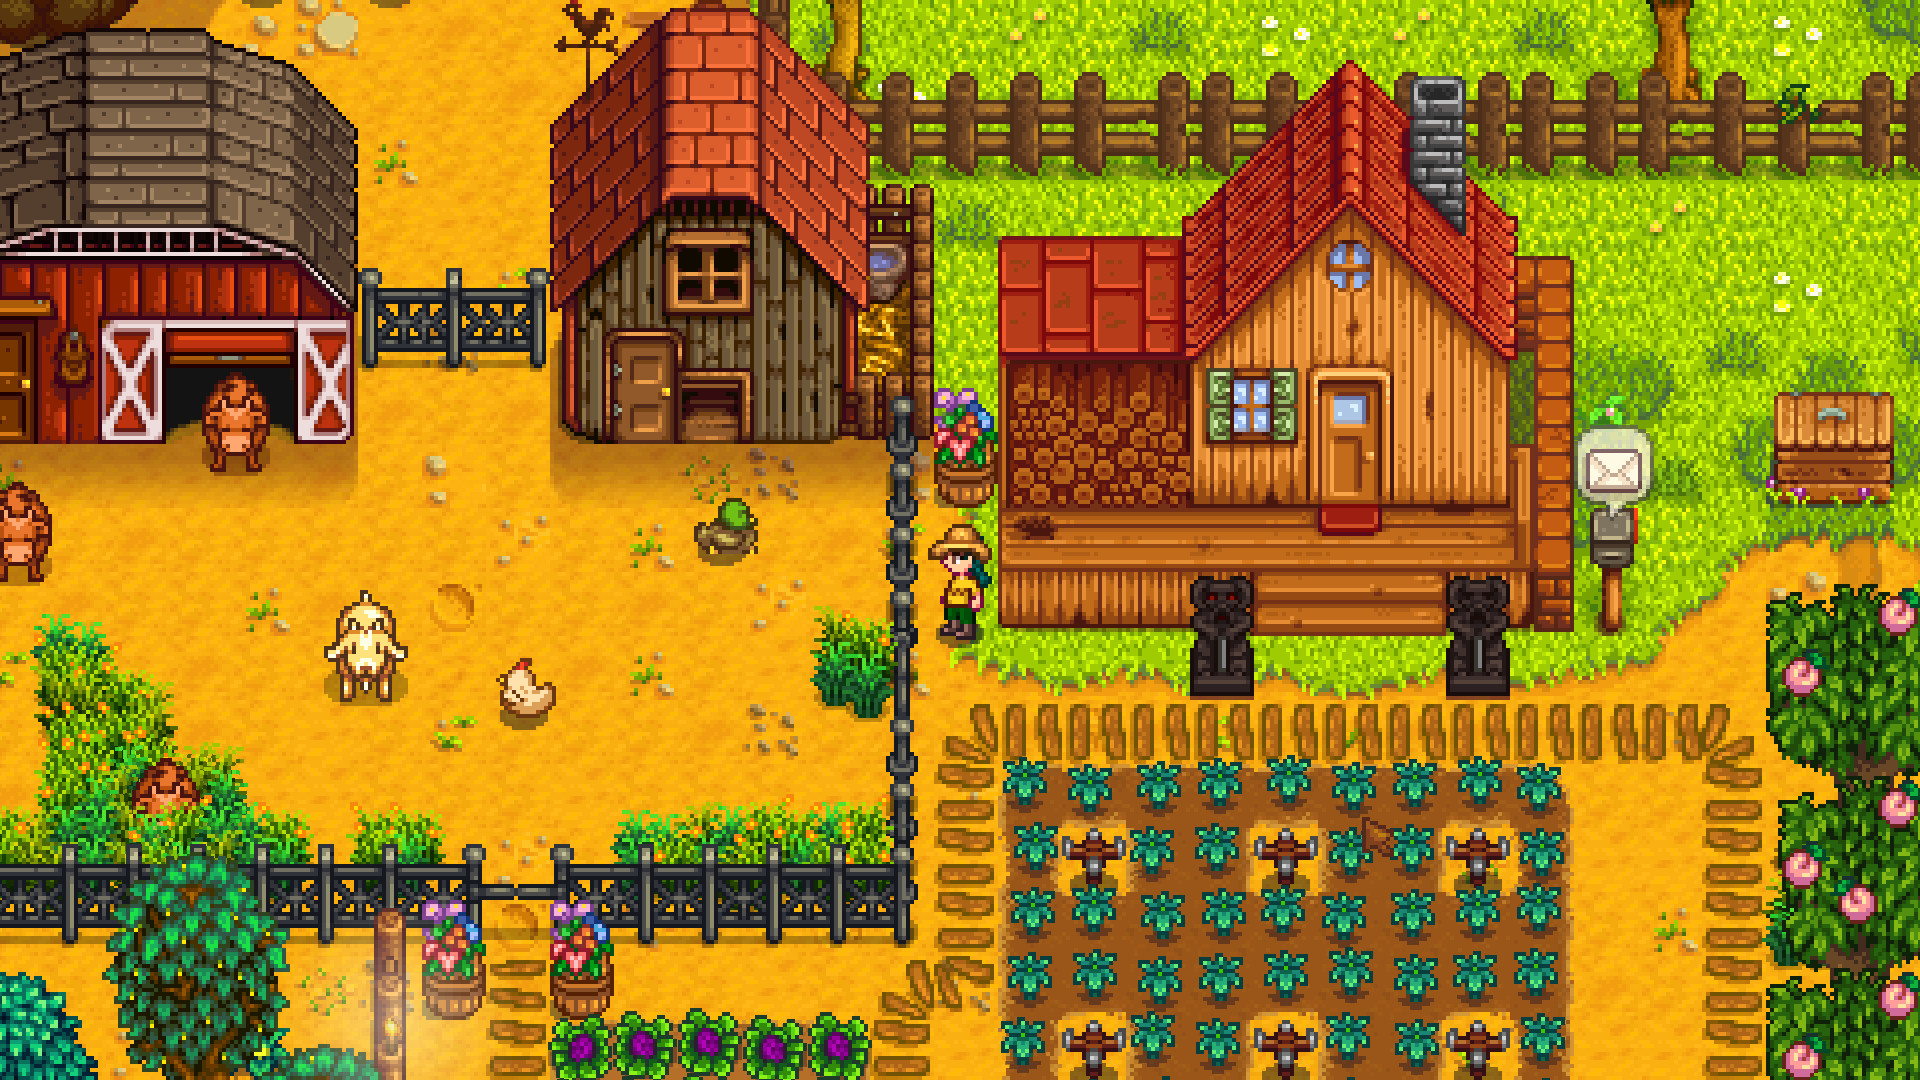 Find the best laptop for Stardew Valley